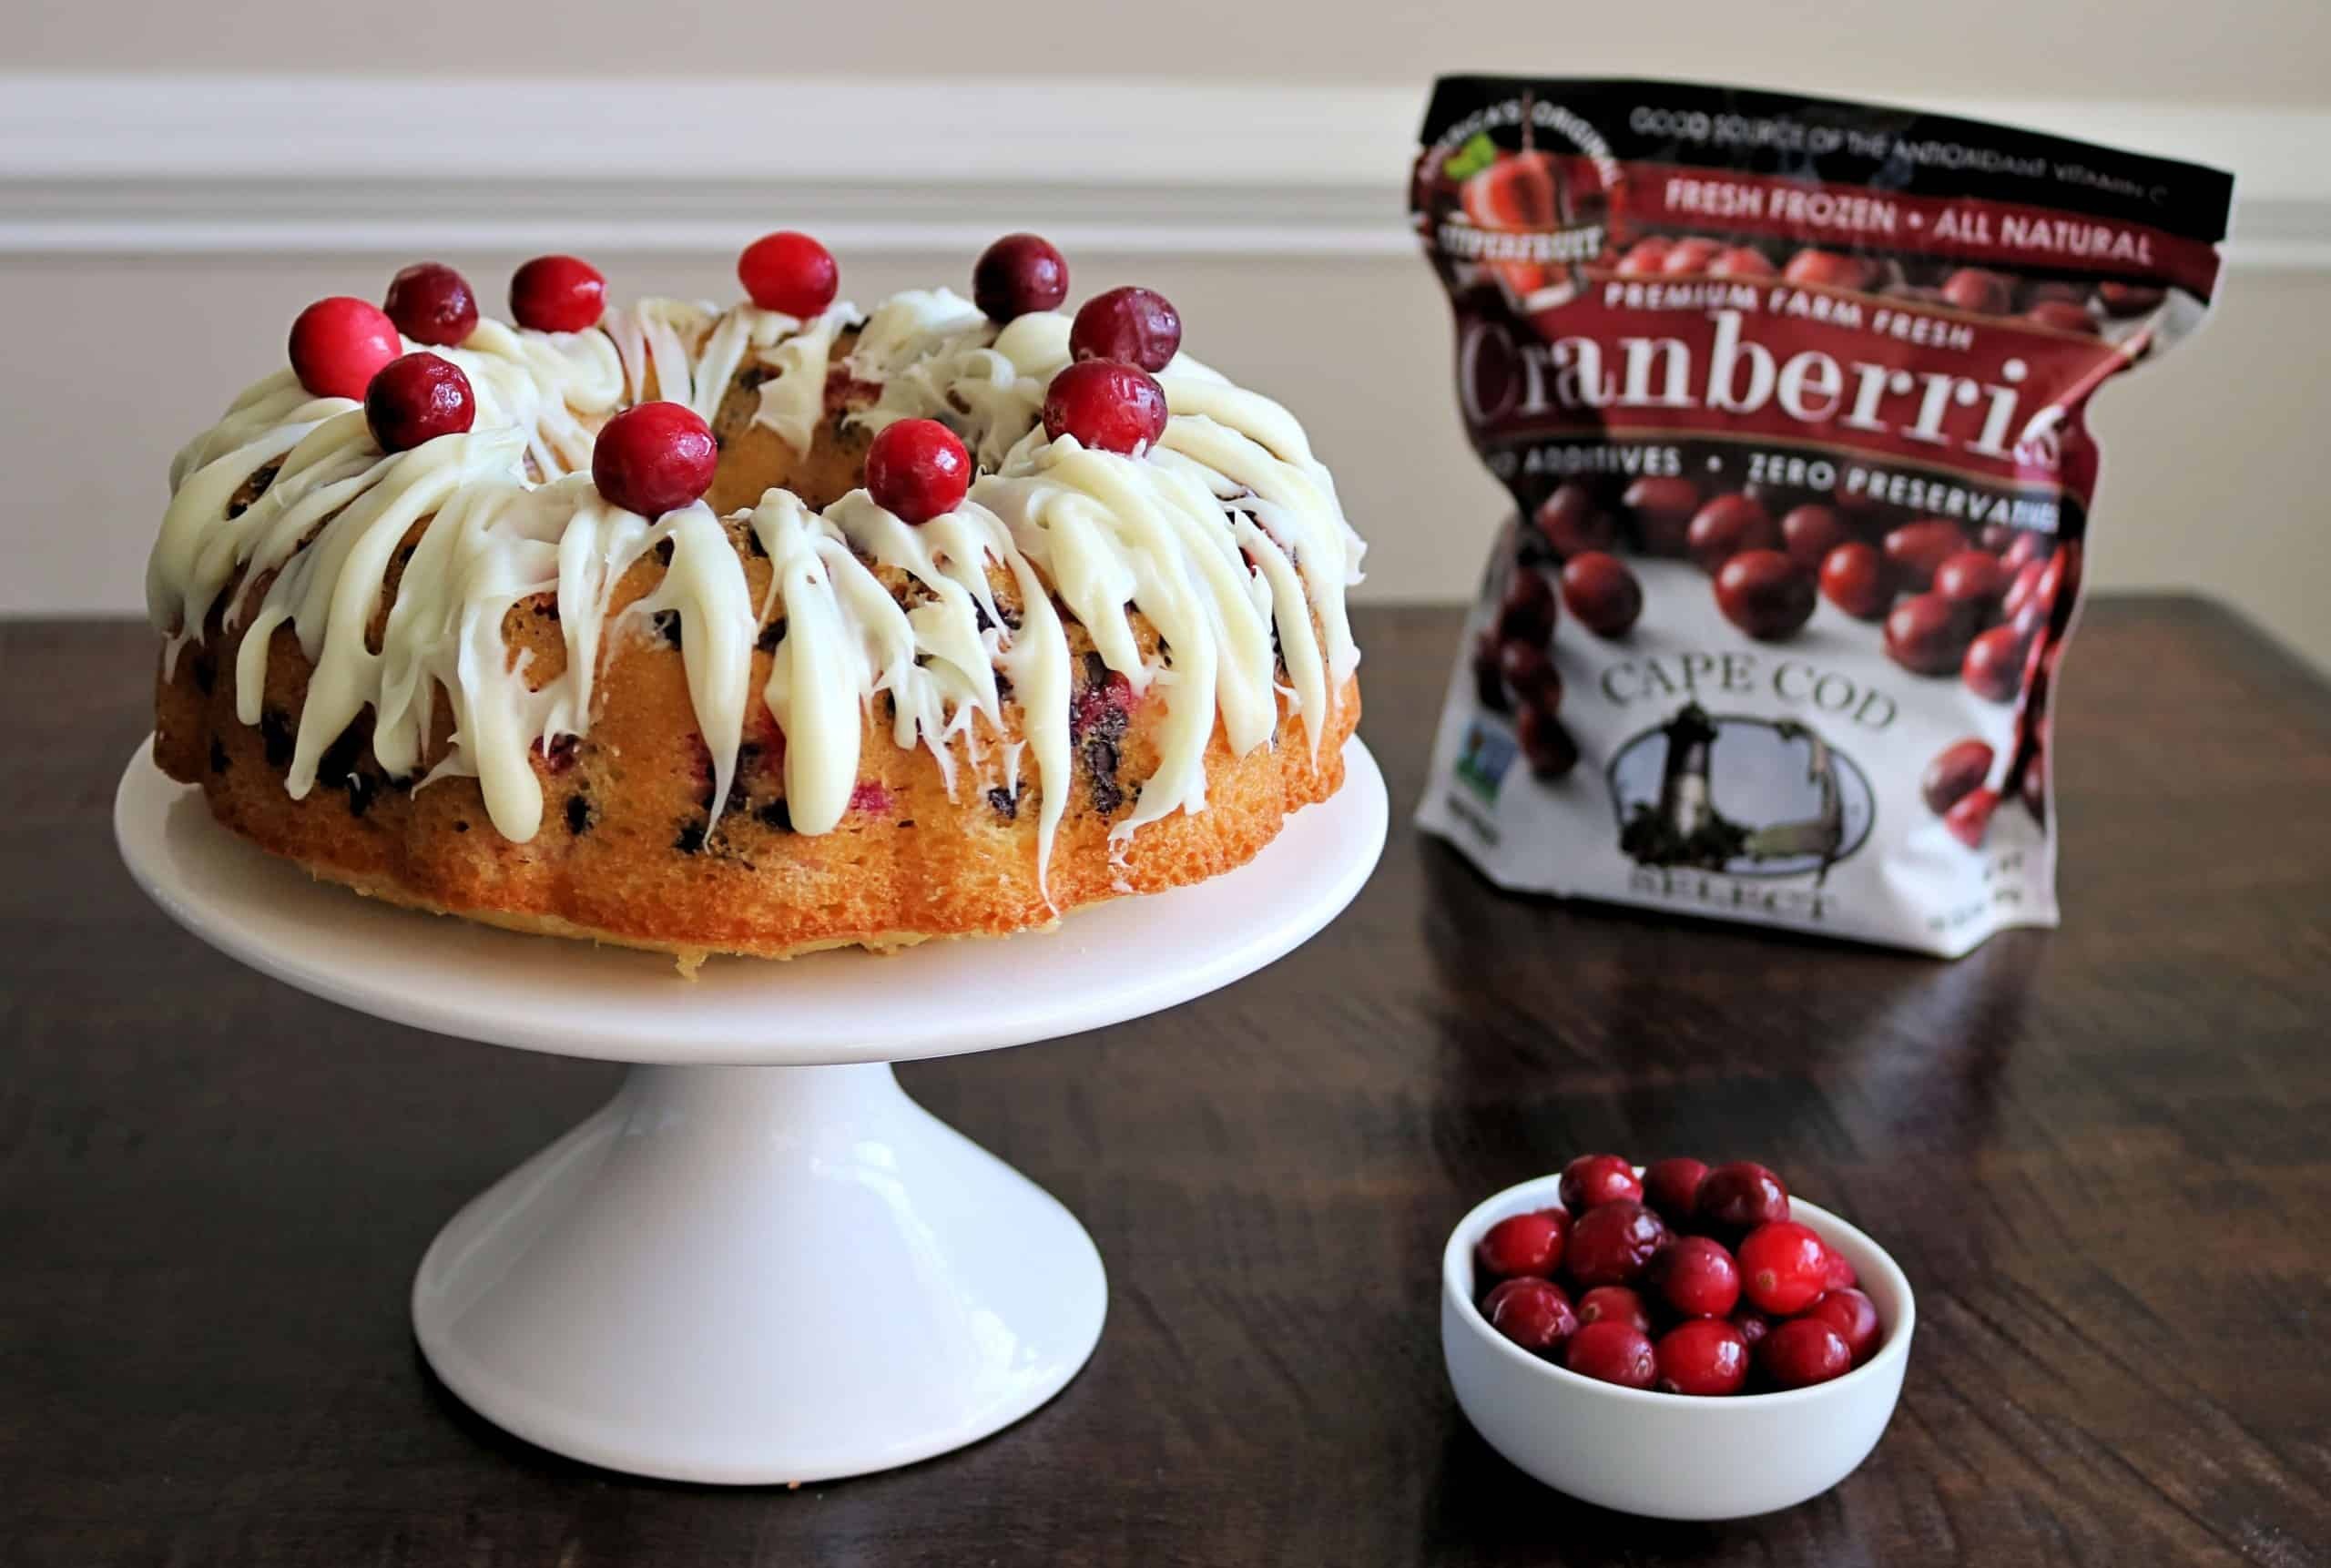 This Double Chocolate Cranberry Bundt Cake is beautiful, easy to make, and the best cranberry cake you'll ever eat! It's made with a french vanilla cake mix, frozen cranberries, semi-sweet chocolate chips, and drizzled with a simple white chocolate glaze for an incredible cake perfect for the holidays or anytime you're craving cranberries! #cranberrycake #cake #FrozenCranberries #YearOfTheCranberry #CapeCodSelect #SelectTheBest @CapeCodSelect